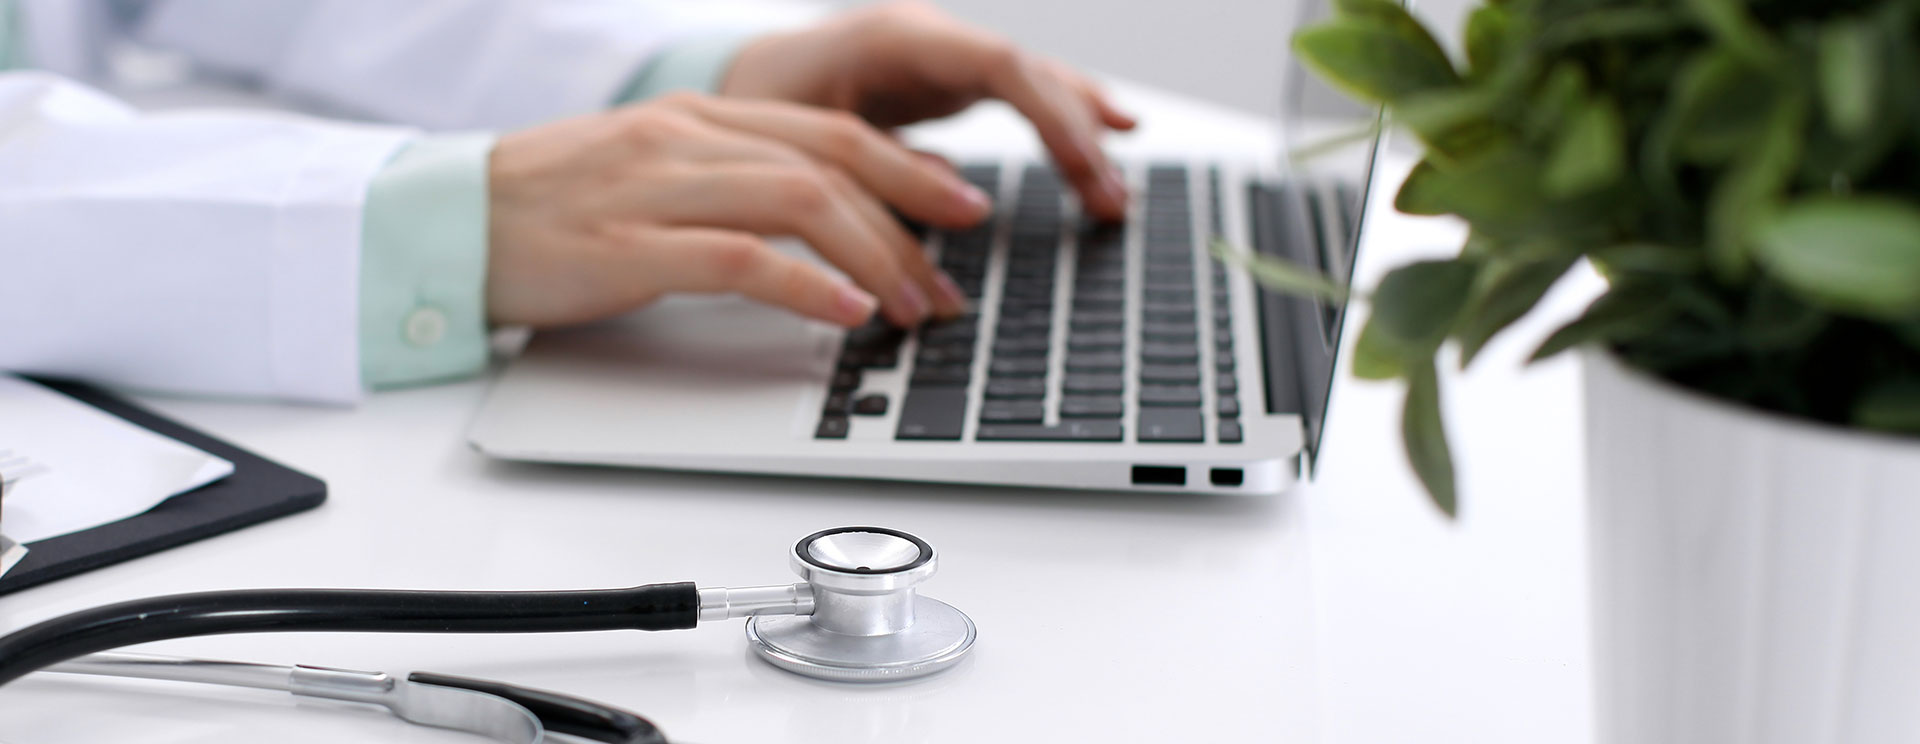 Hands typing on a laptop, asking GoAnywhere experts questions, with a stethoscope and potted plant in the foreground